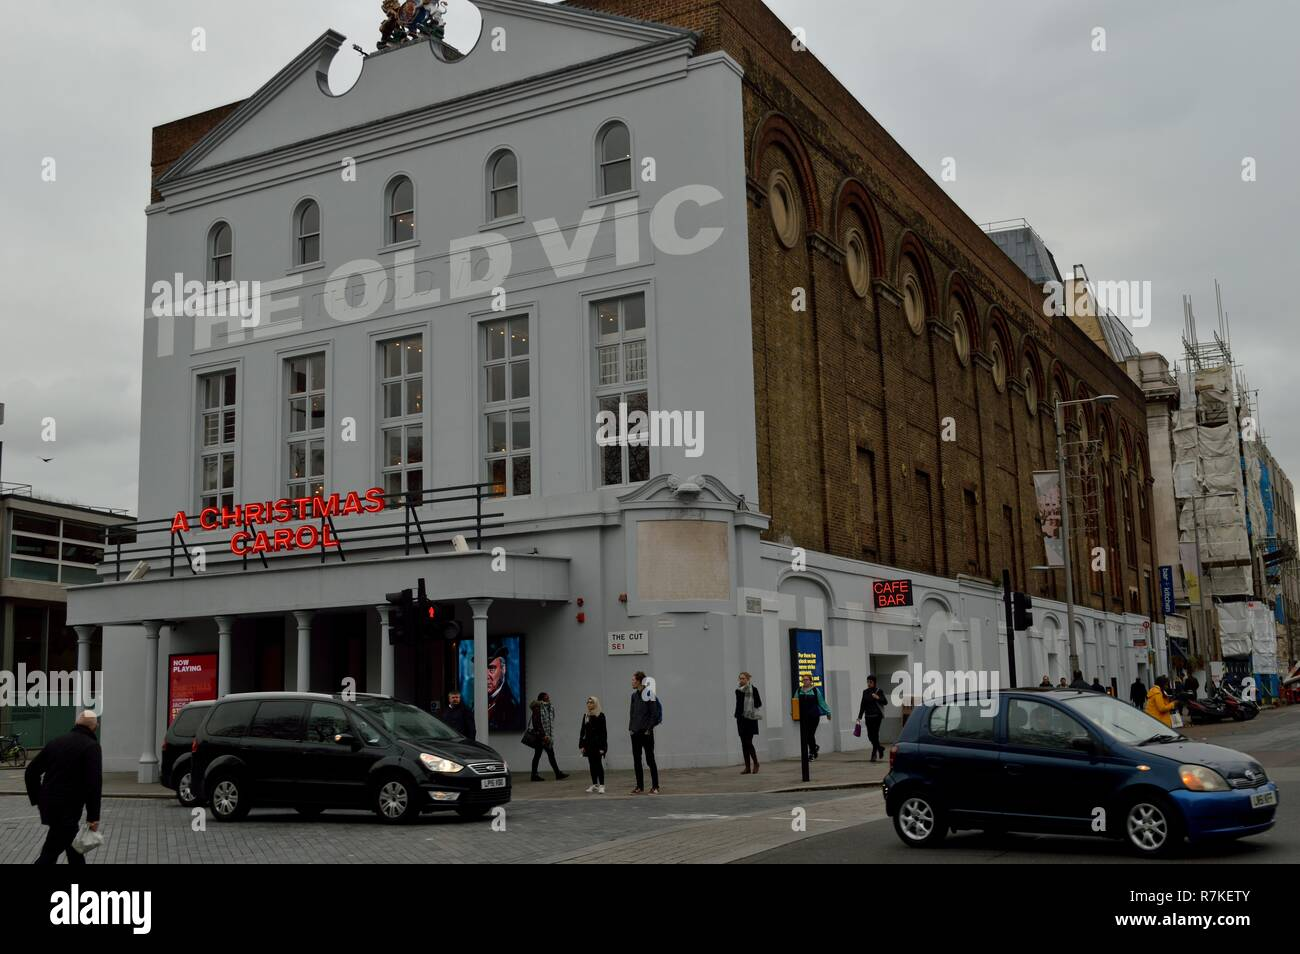 Old Vic theatre, waterloo, southwark - Stock Image